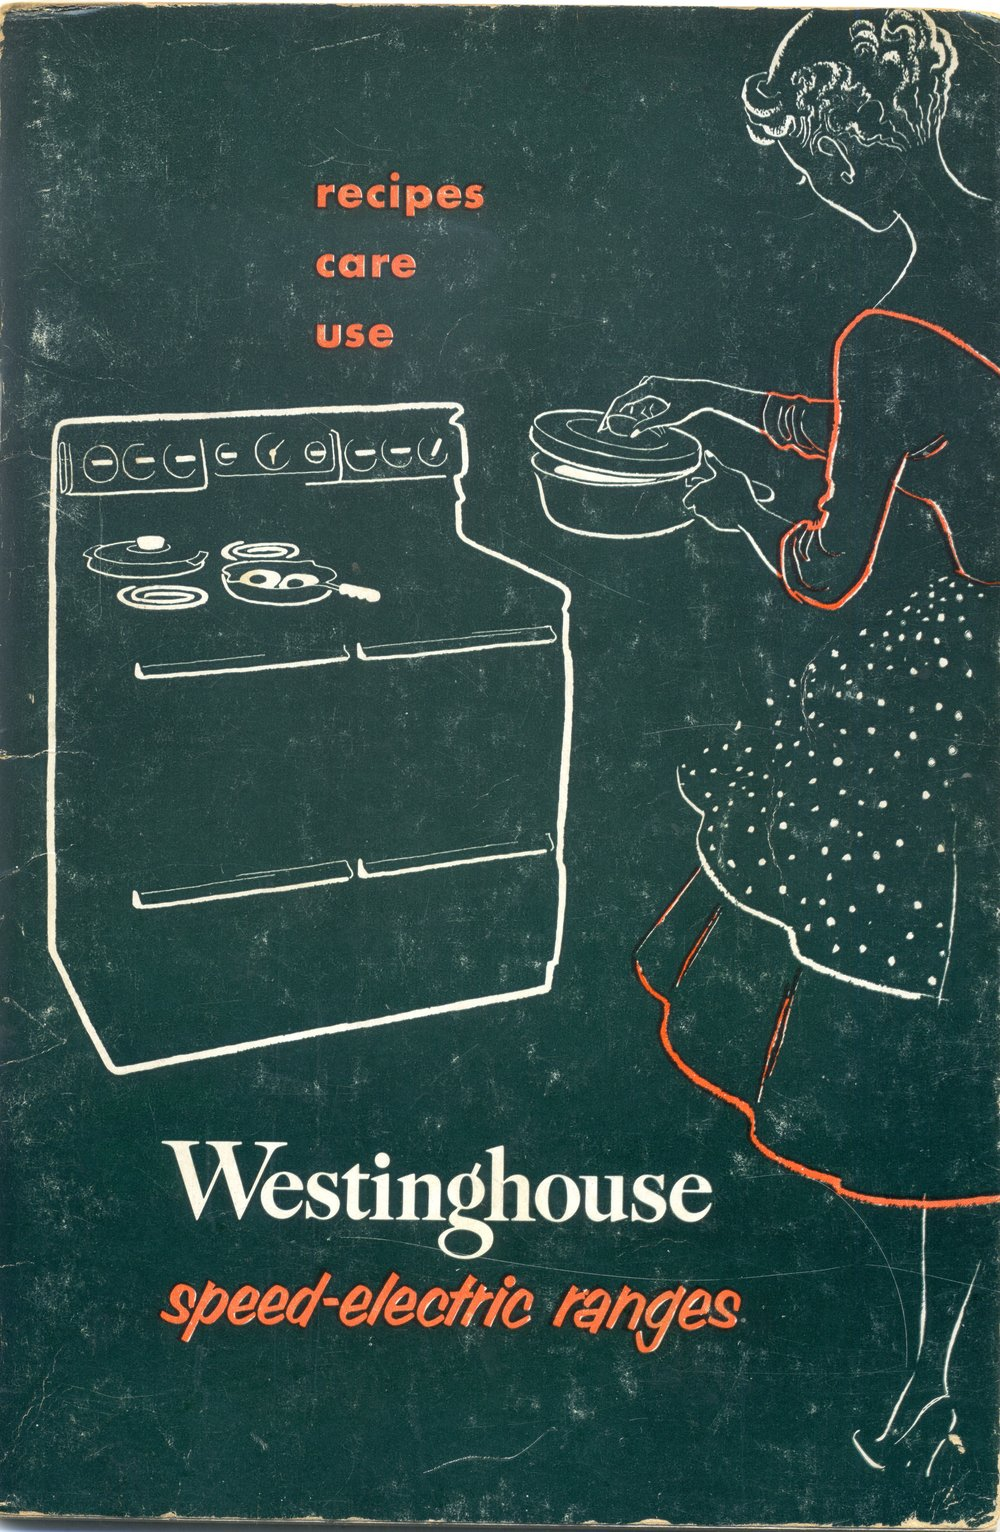 1954 Westinghouse electric range booklet